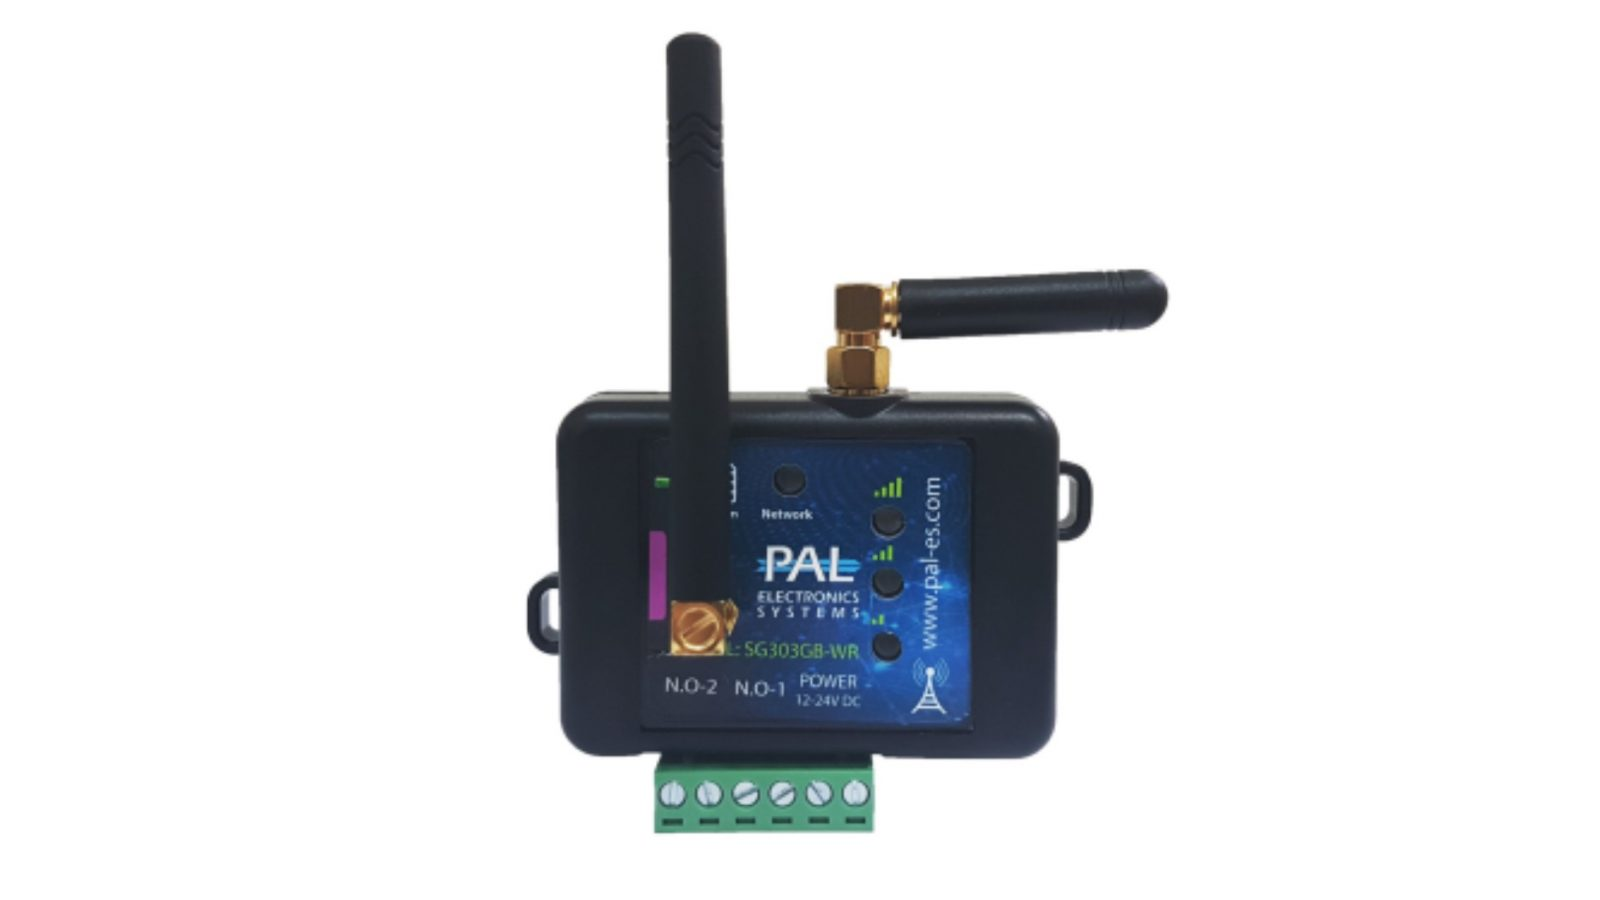 PalGate SG303GB-WR with 2 relay output